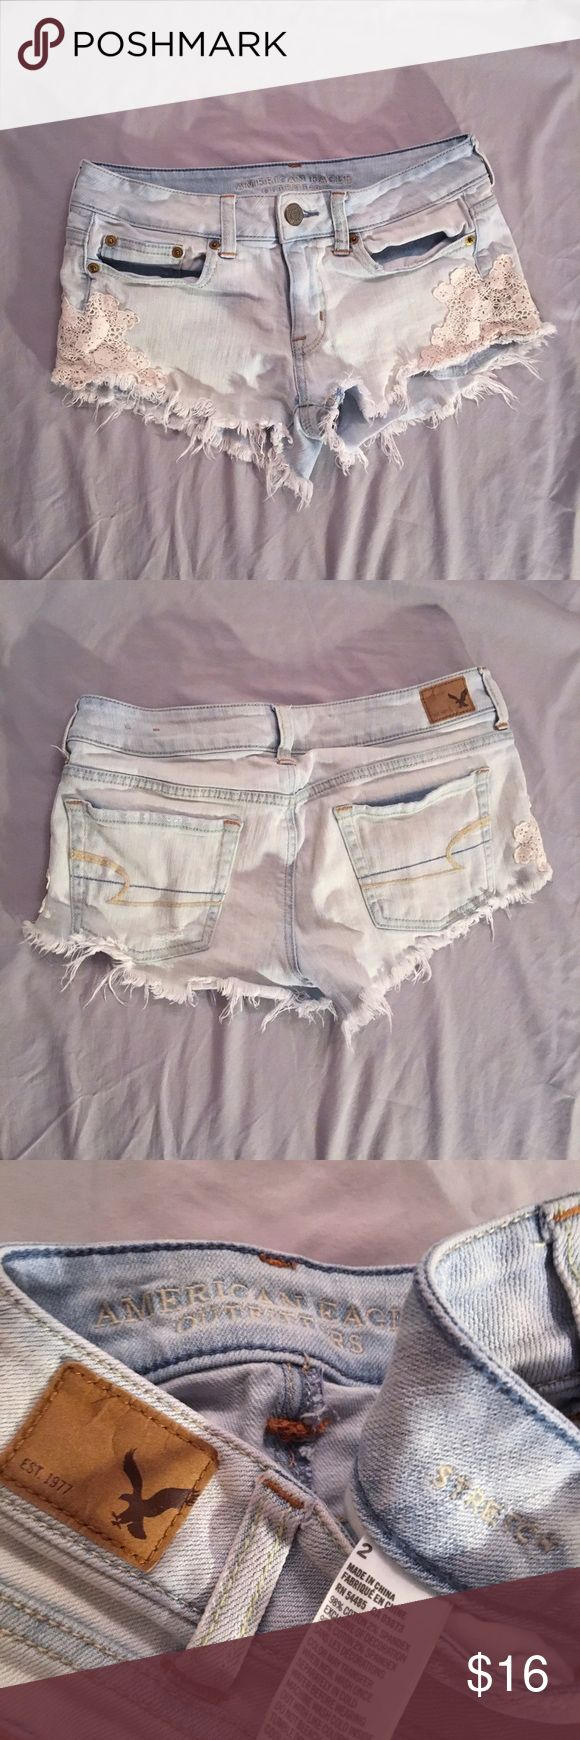 💍 American Eagle Denim Lace Shorts Brand: American Eagle Outfitters (AEO, AE, Aerie) Size: 2 (Stretch, could fit up) Color: Light Wash, White Style: Low-Rise Shorts with lace detailing Condition: Washed once, worn once to model Retail: $49.95 + Tax American Eagle Outfitters Shorts Jean Shorts